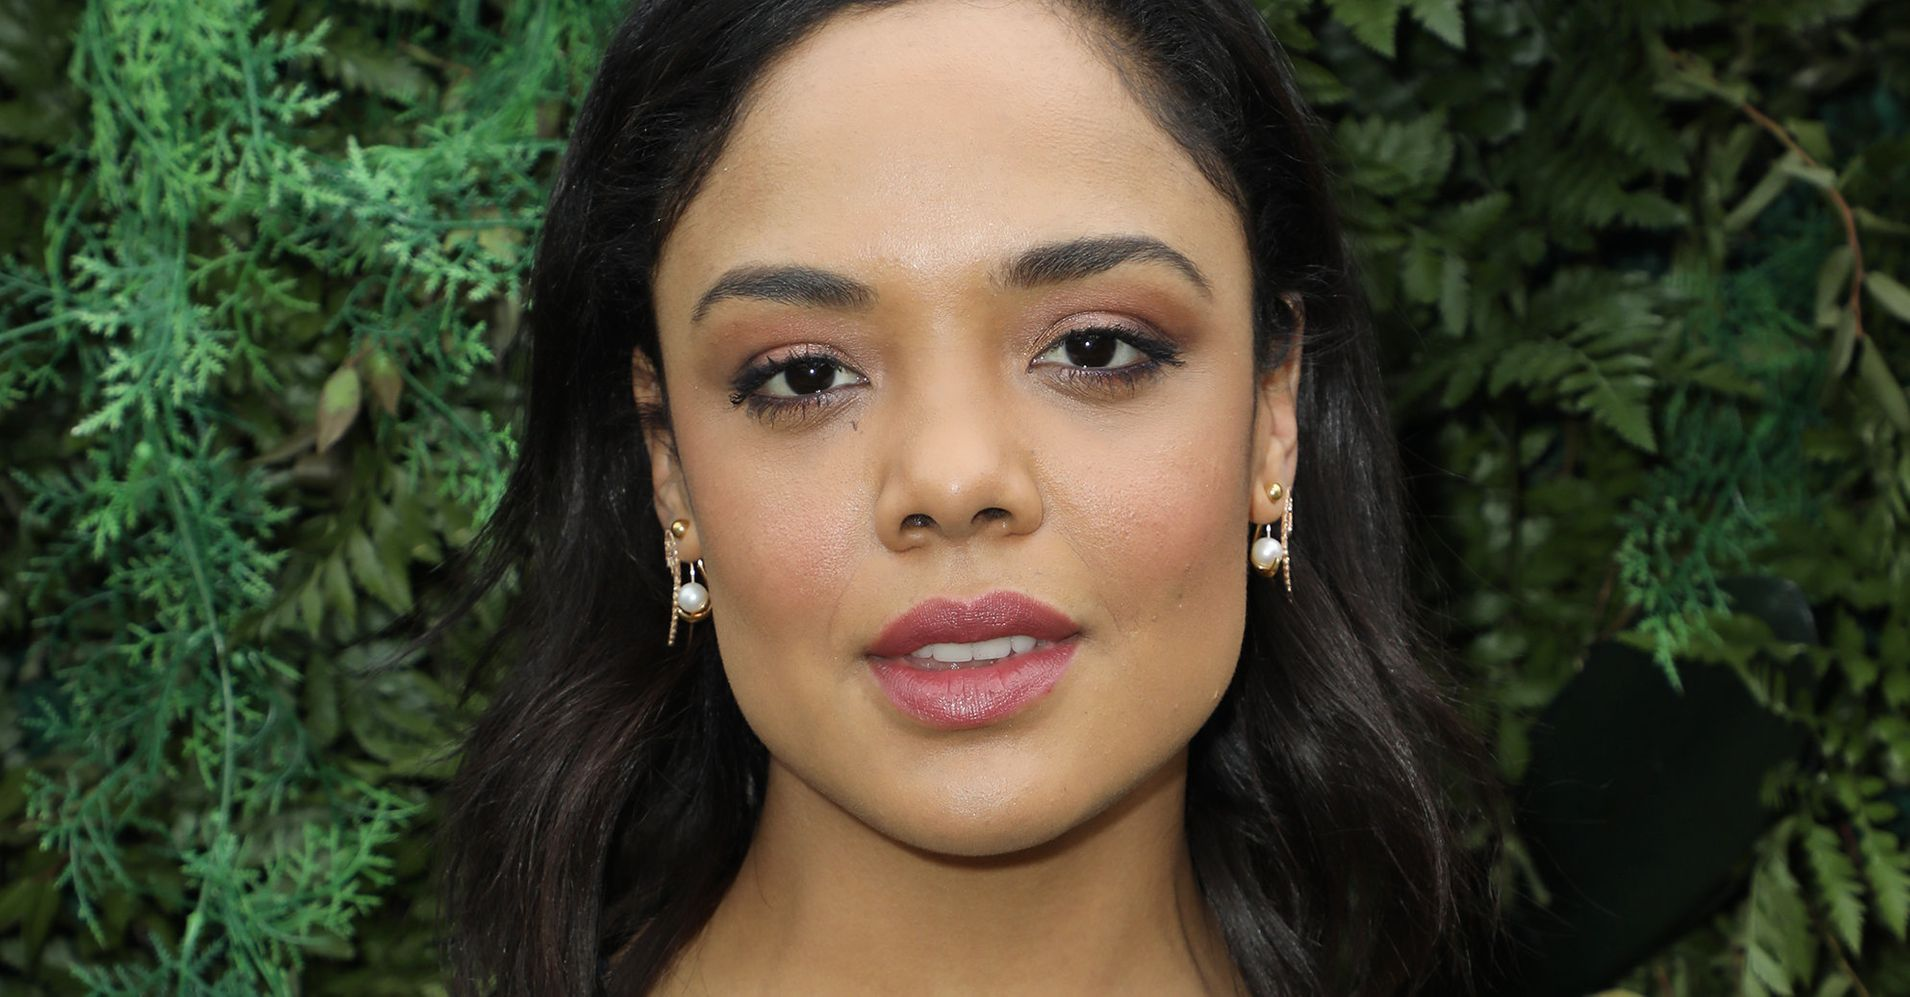 Tessa Thompson Can't Get Enough Of A Hilarious Meme Comparing Her To Goats